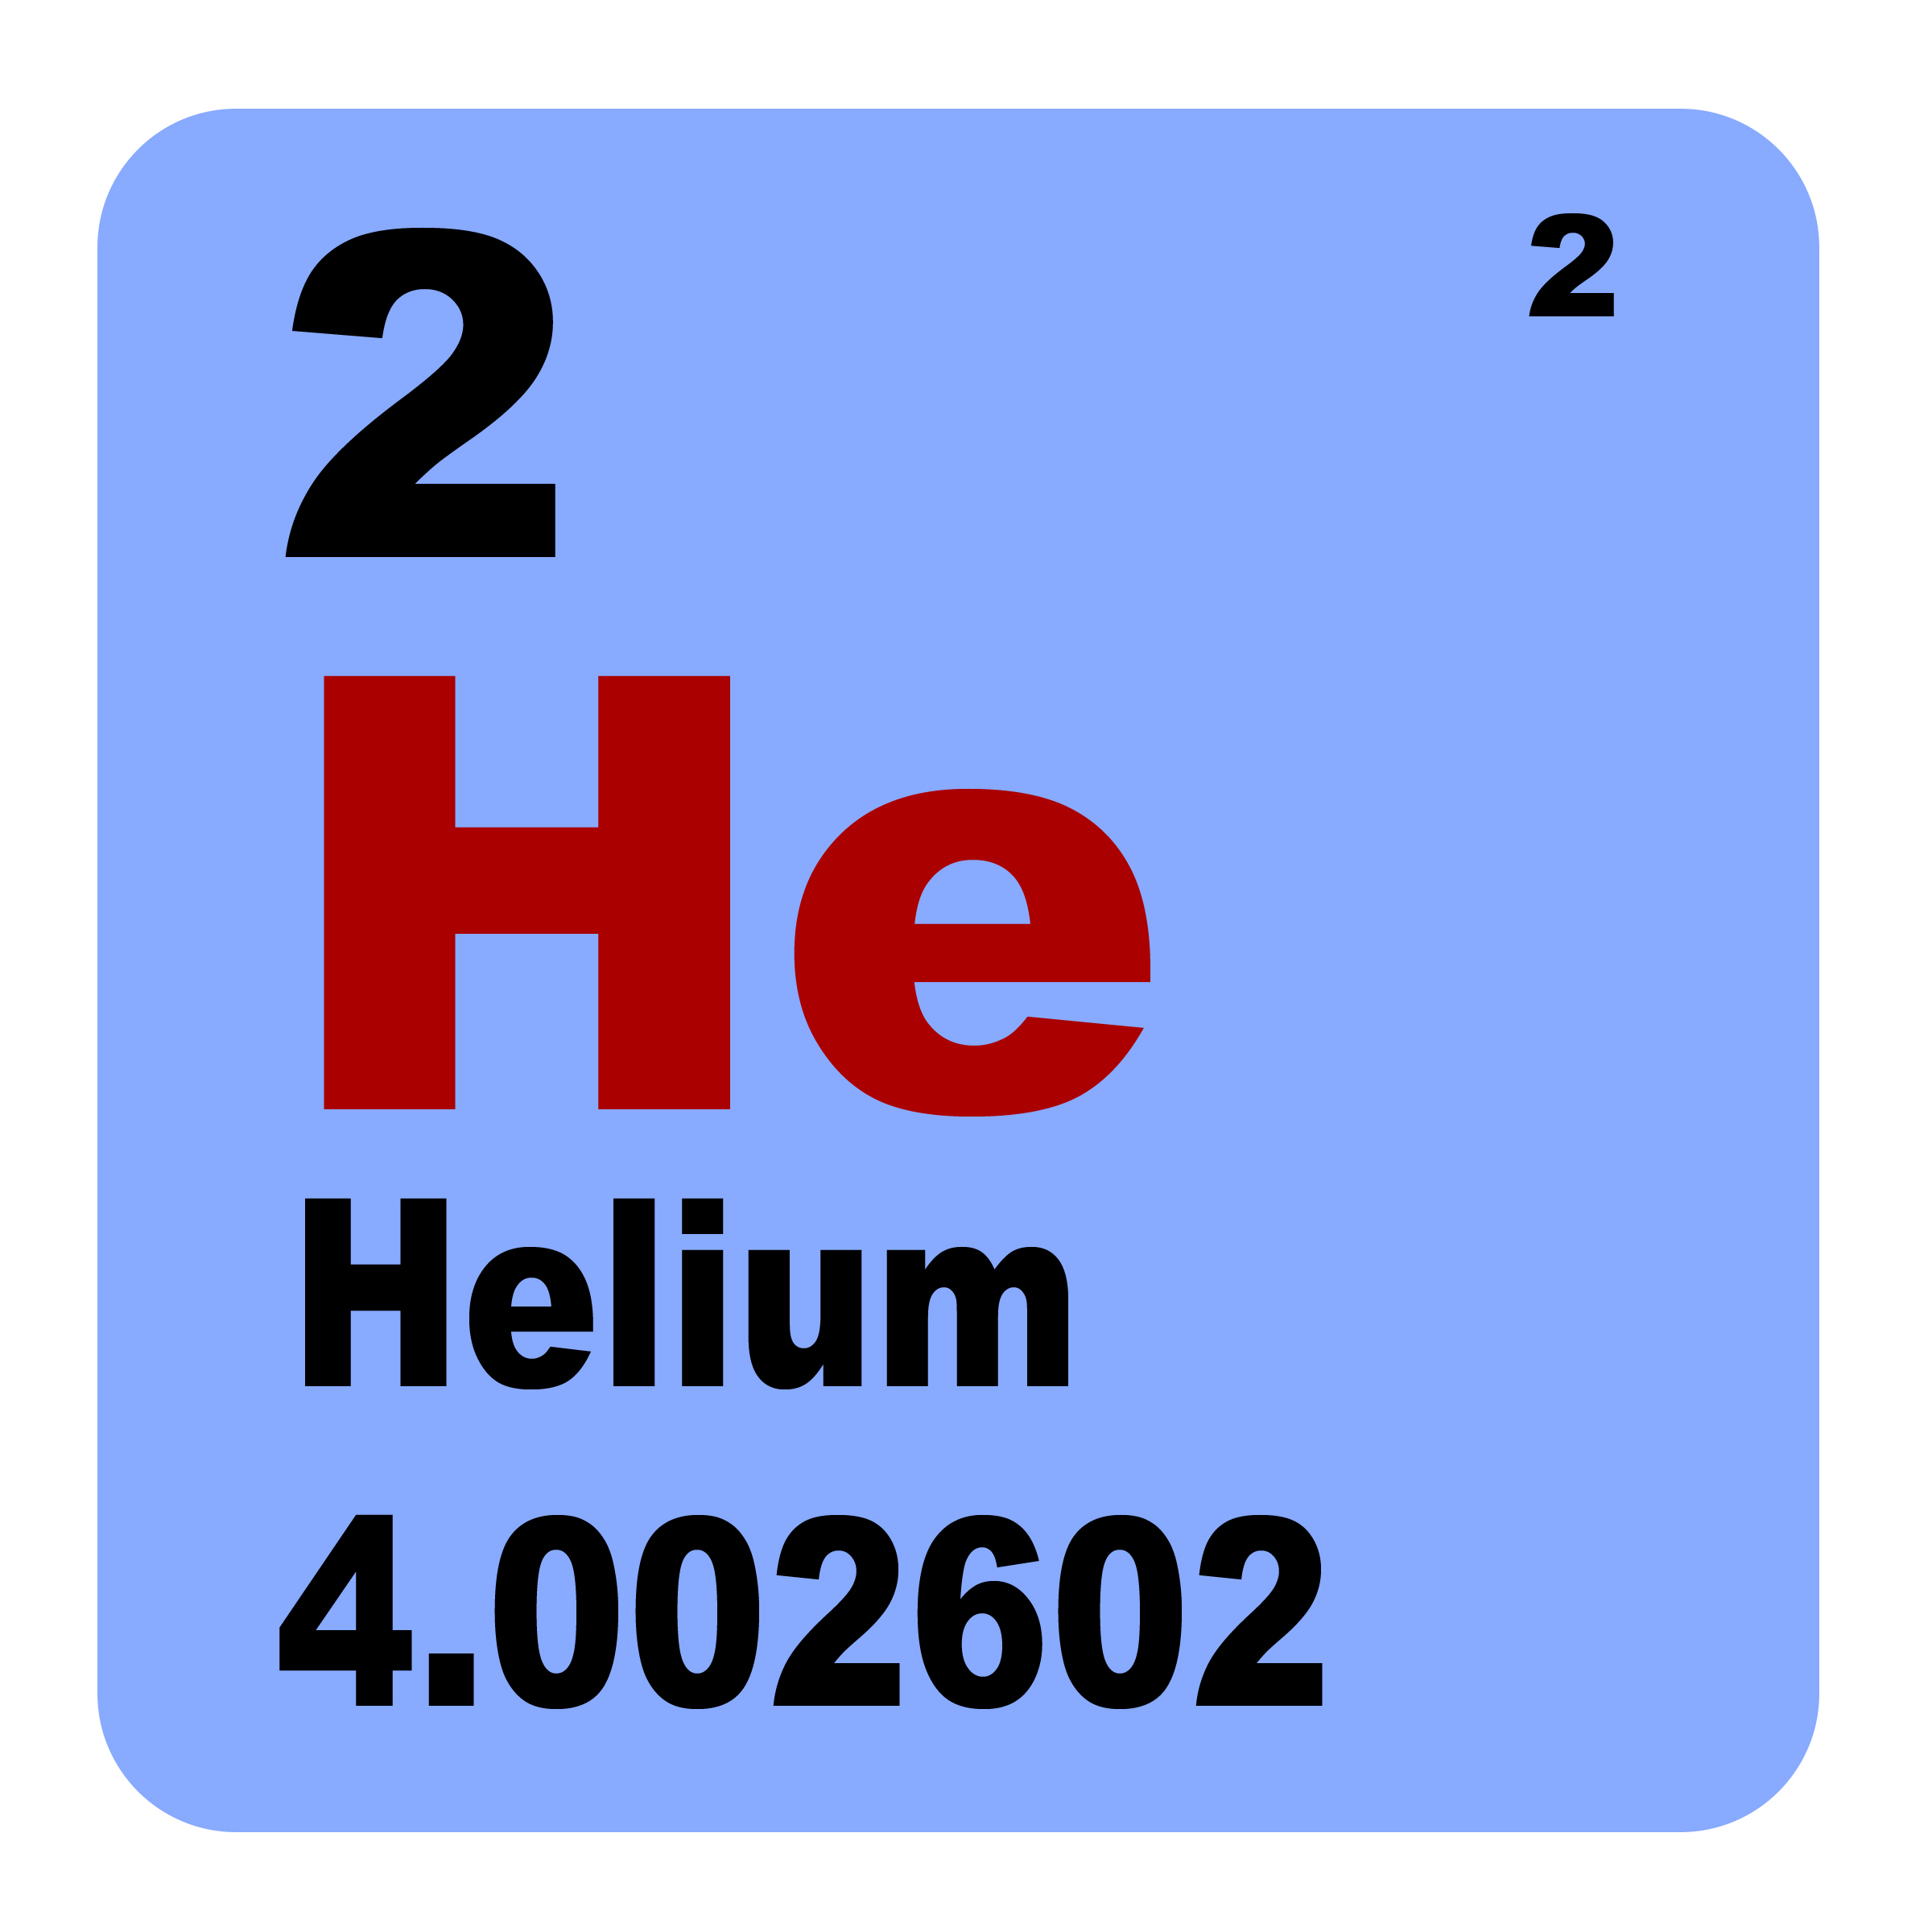 Who knew there might be a helium shortage?